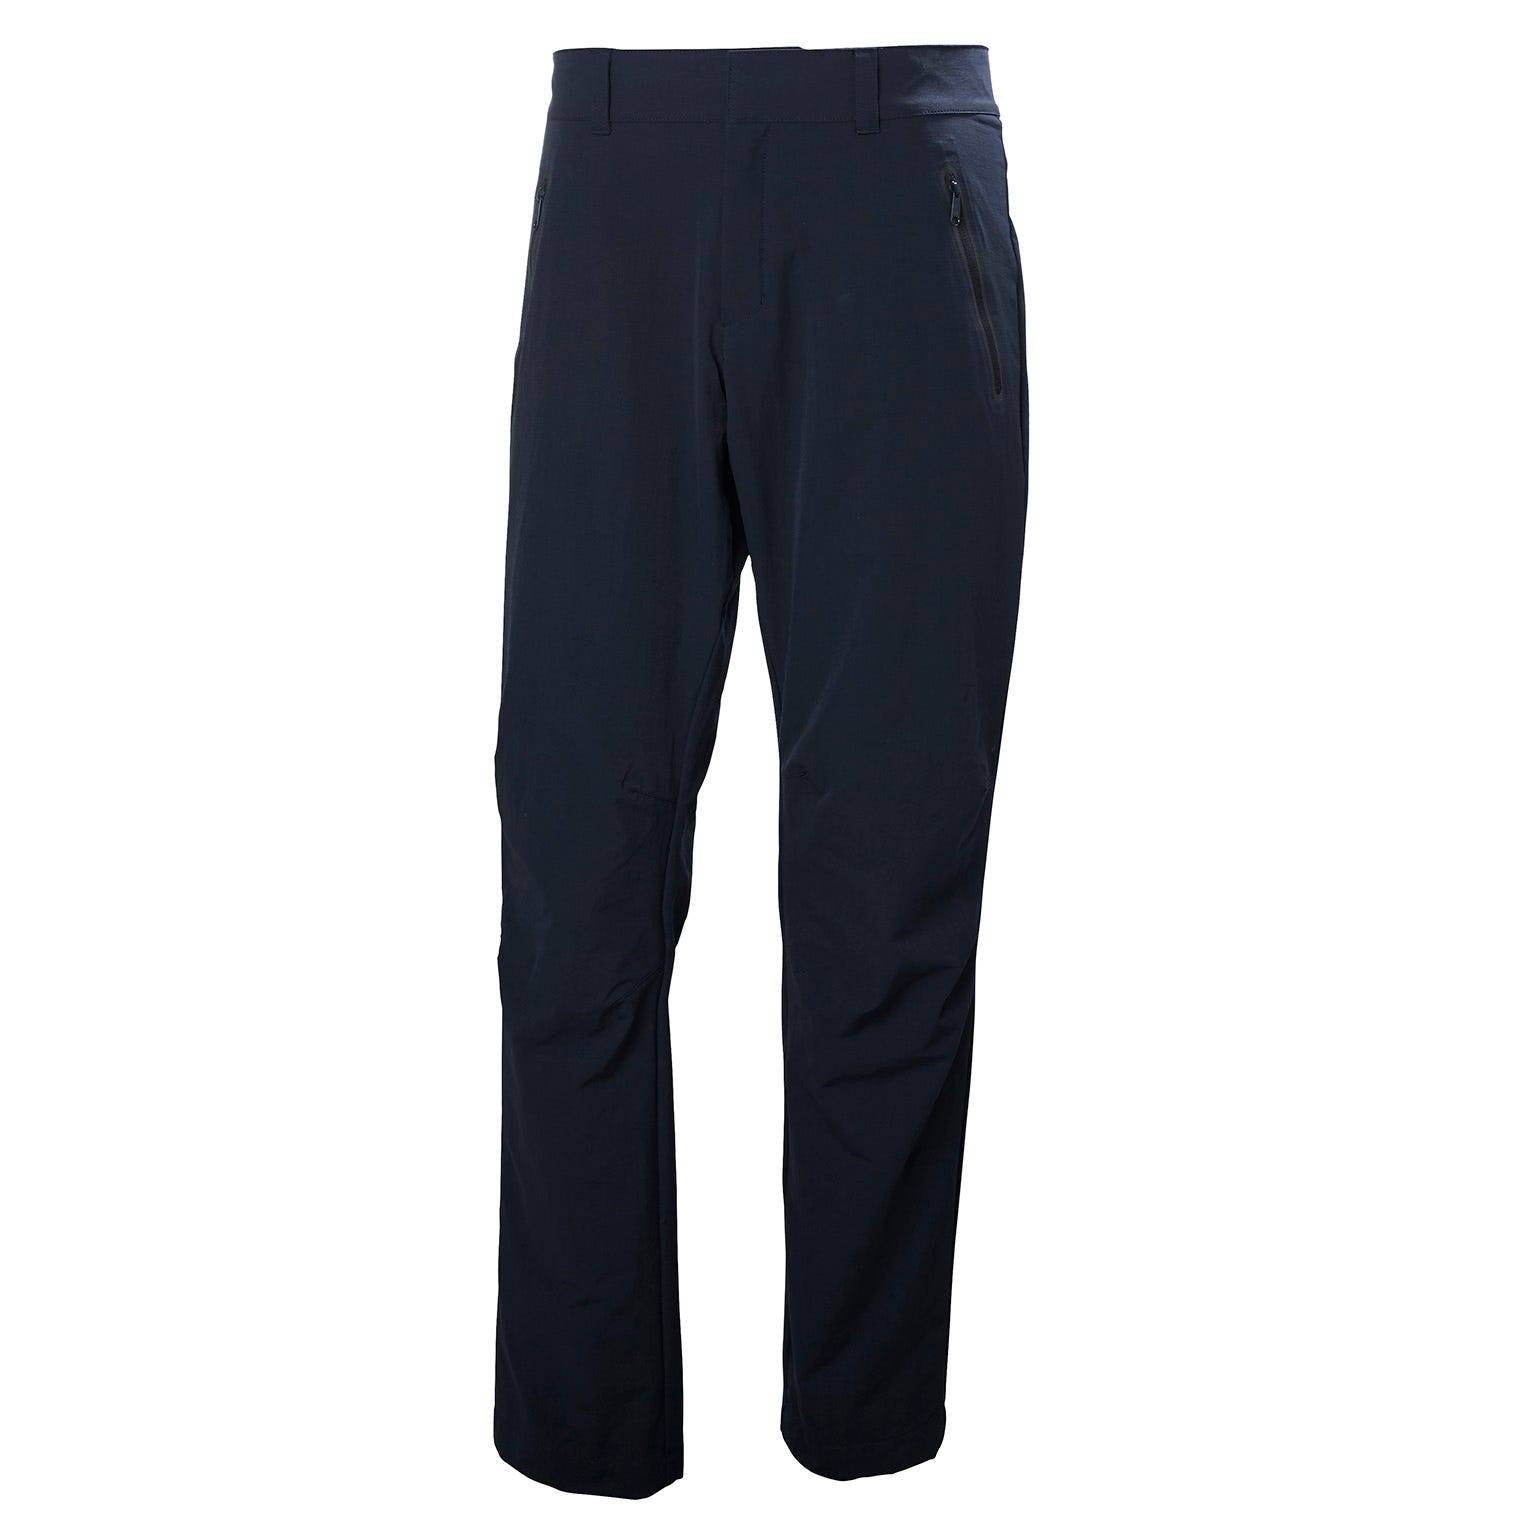 Helly Hansen Crewline Qd Pant Mens Sailing Navy 33